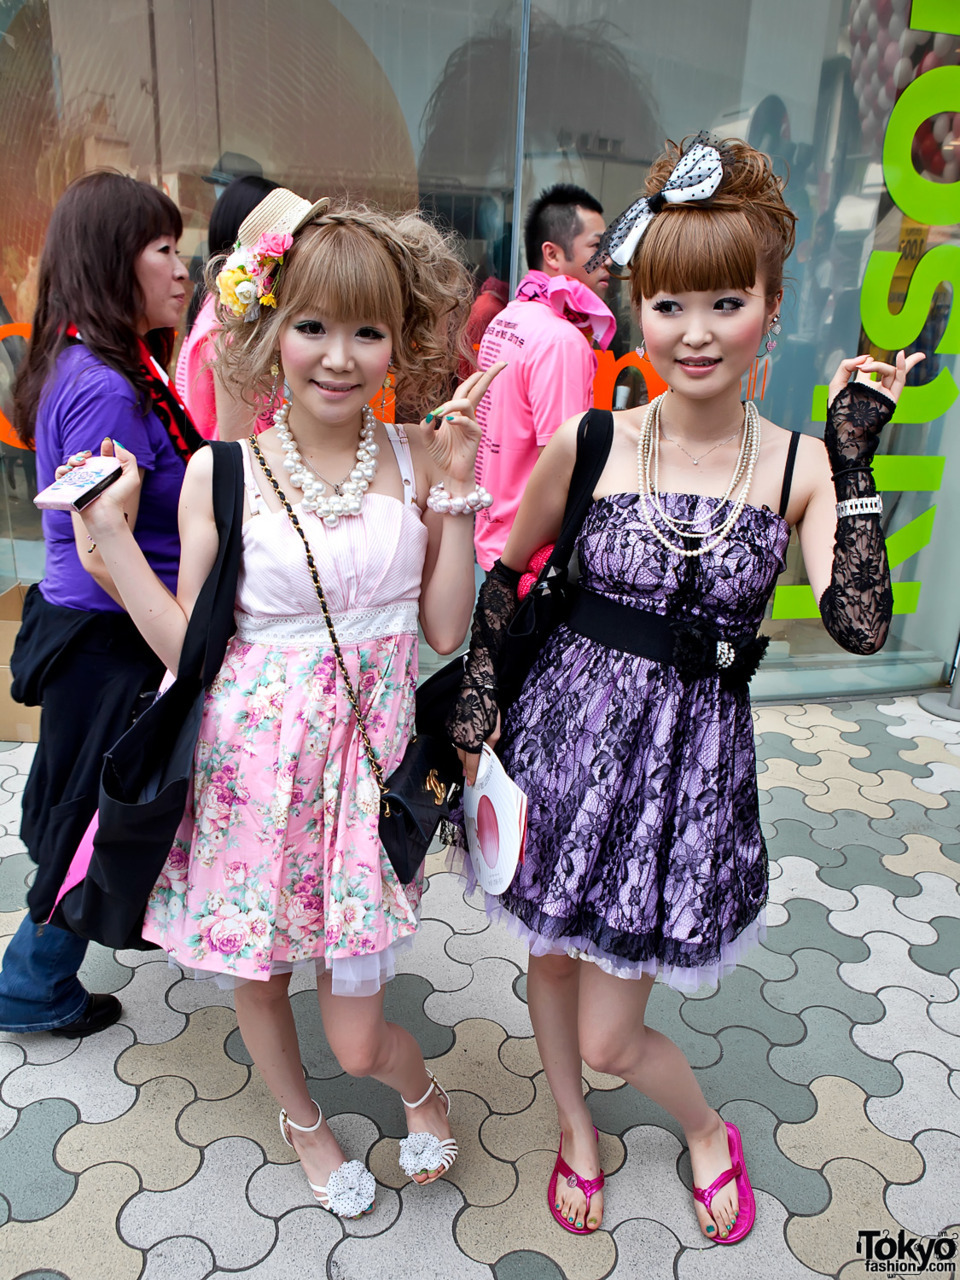 Japanese girls in empire waist dresses near LaForet Harajuku.